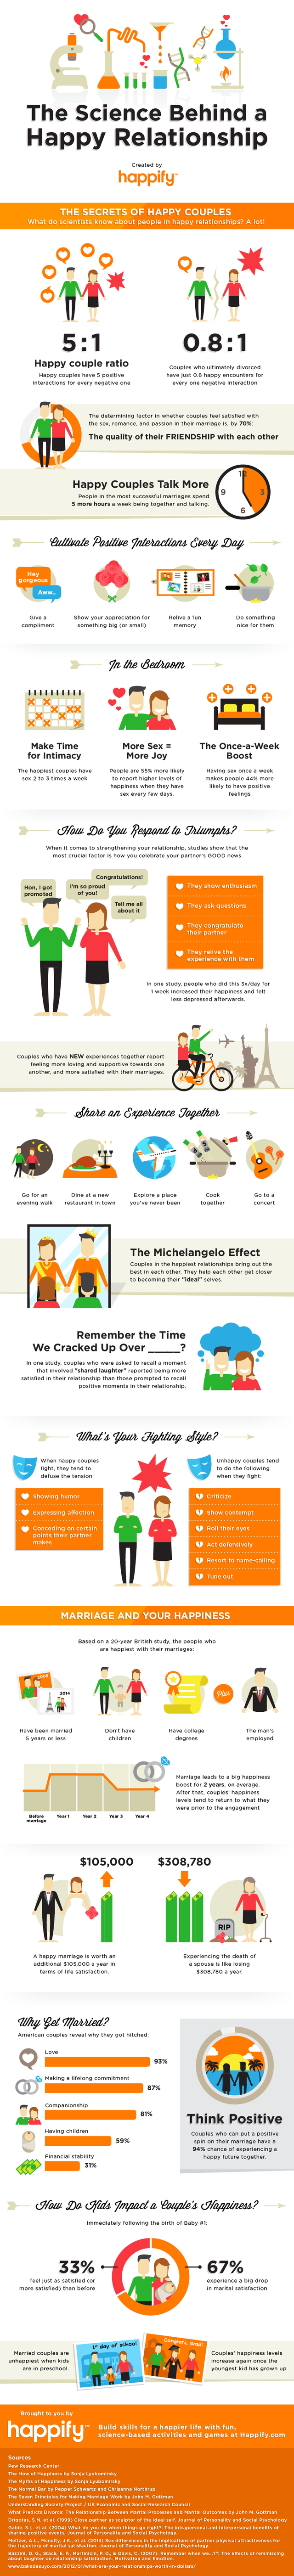 happiness, love, relationships, family, infographics, psychology, marriage, valentine